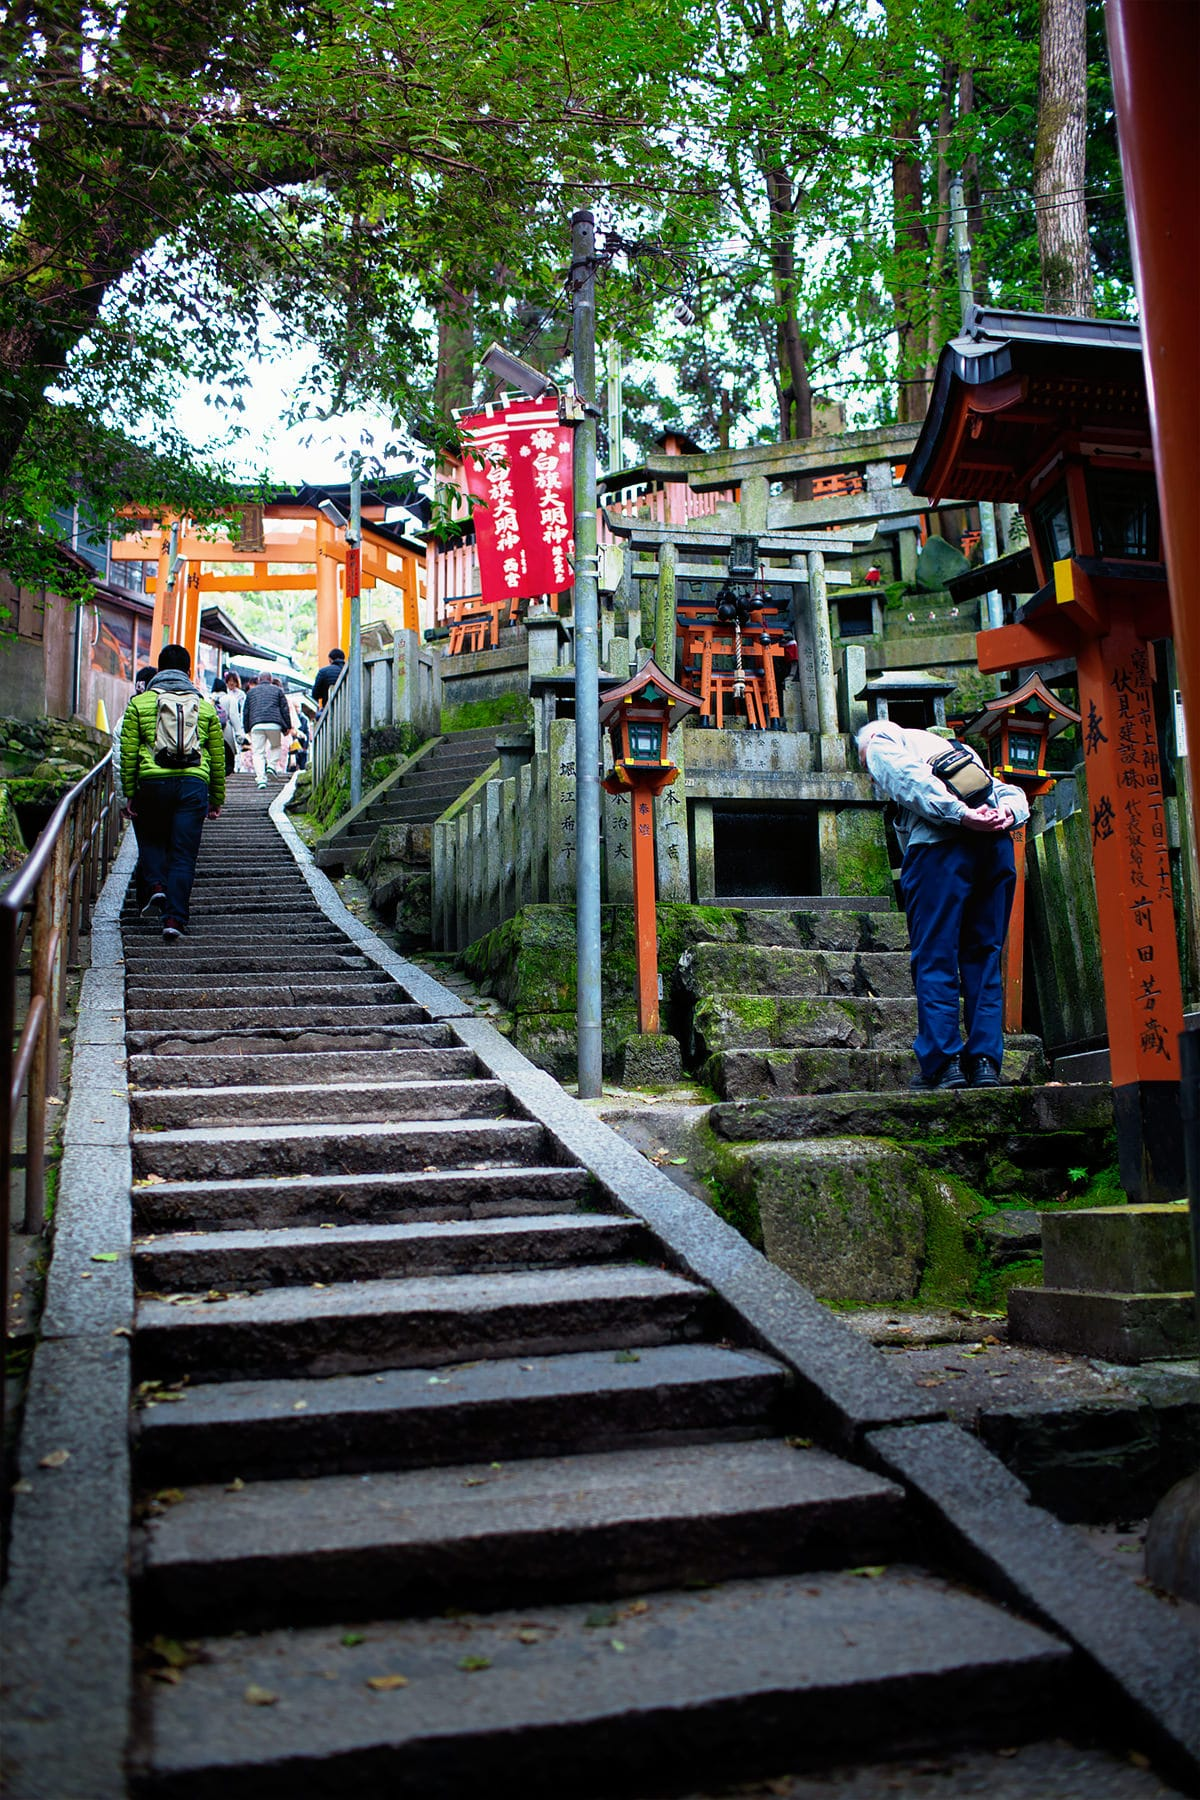 Steep flights of stair at Fushimi Inari Shrine